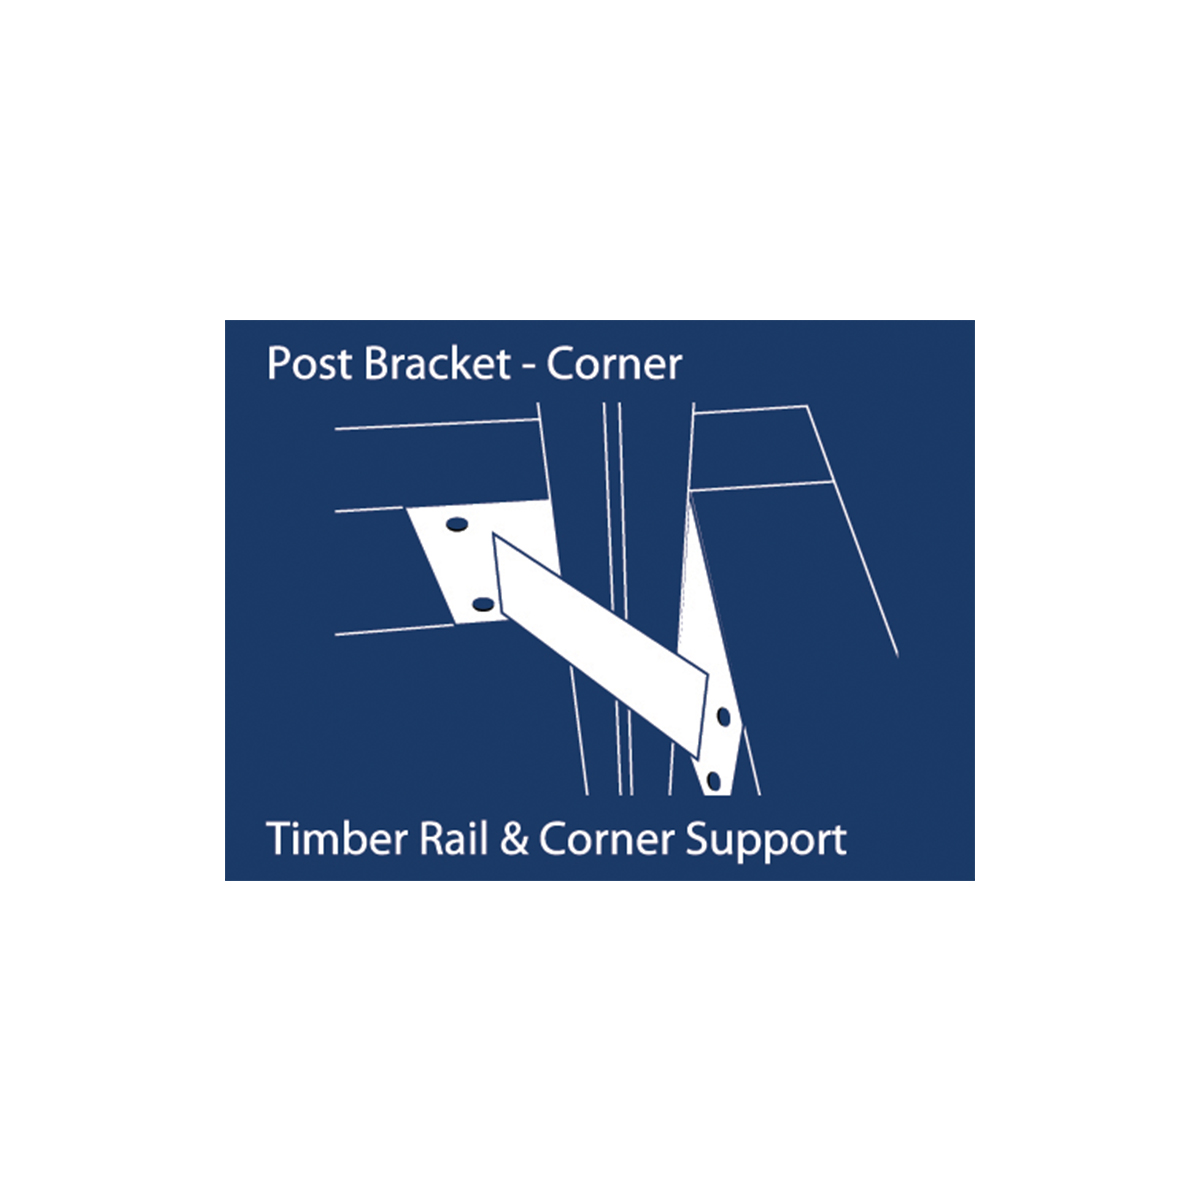 12217 post bracket corner illustration